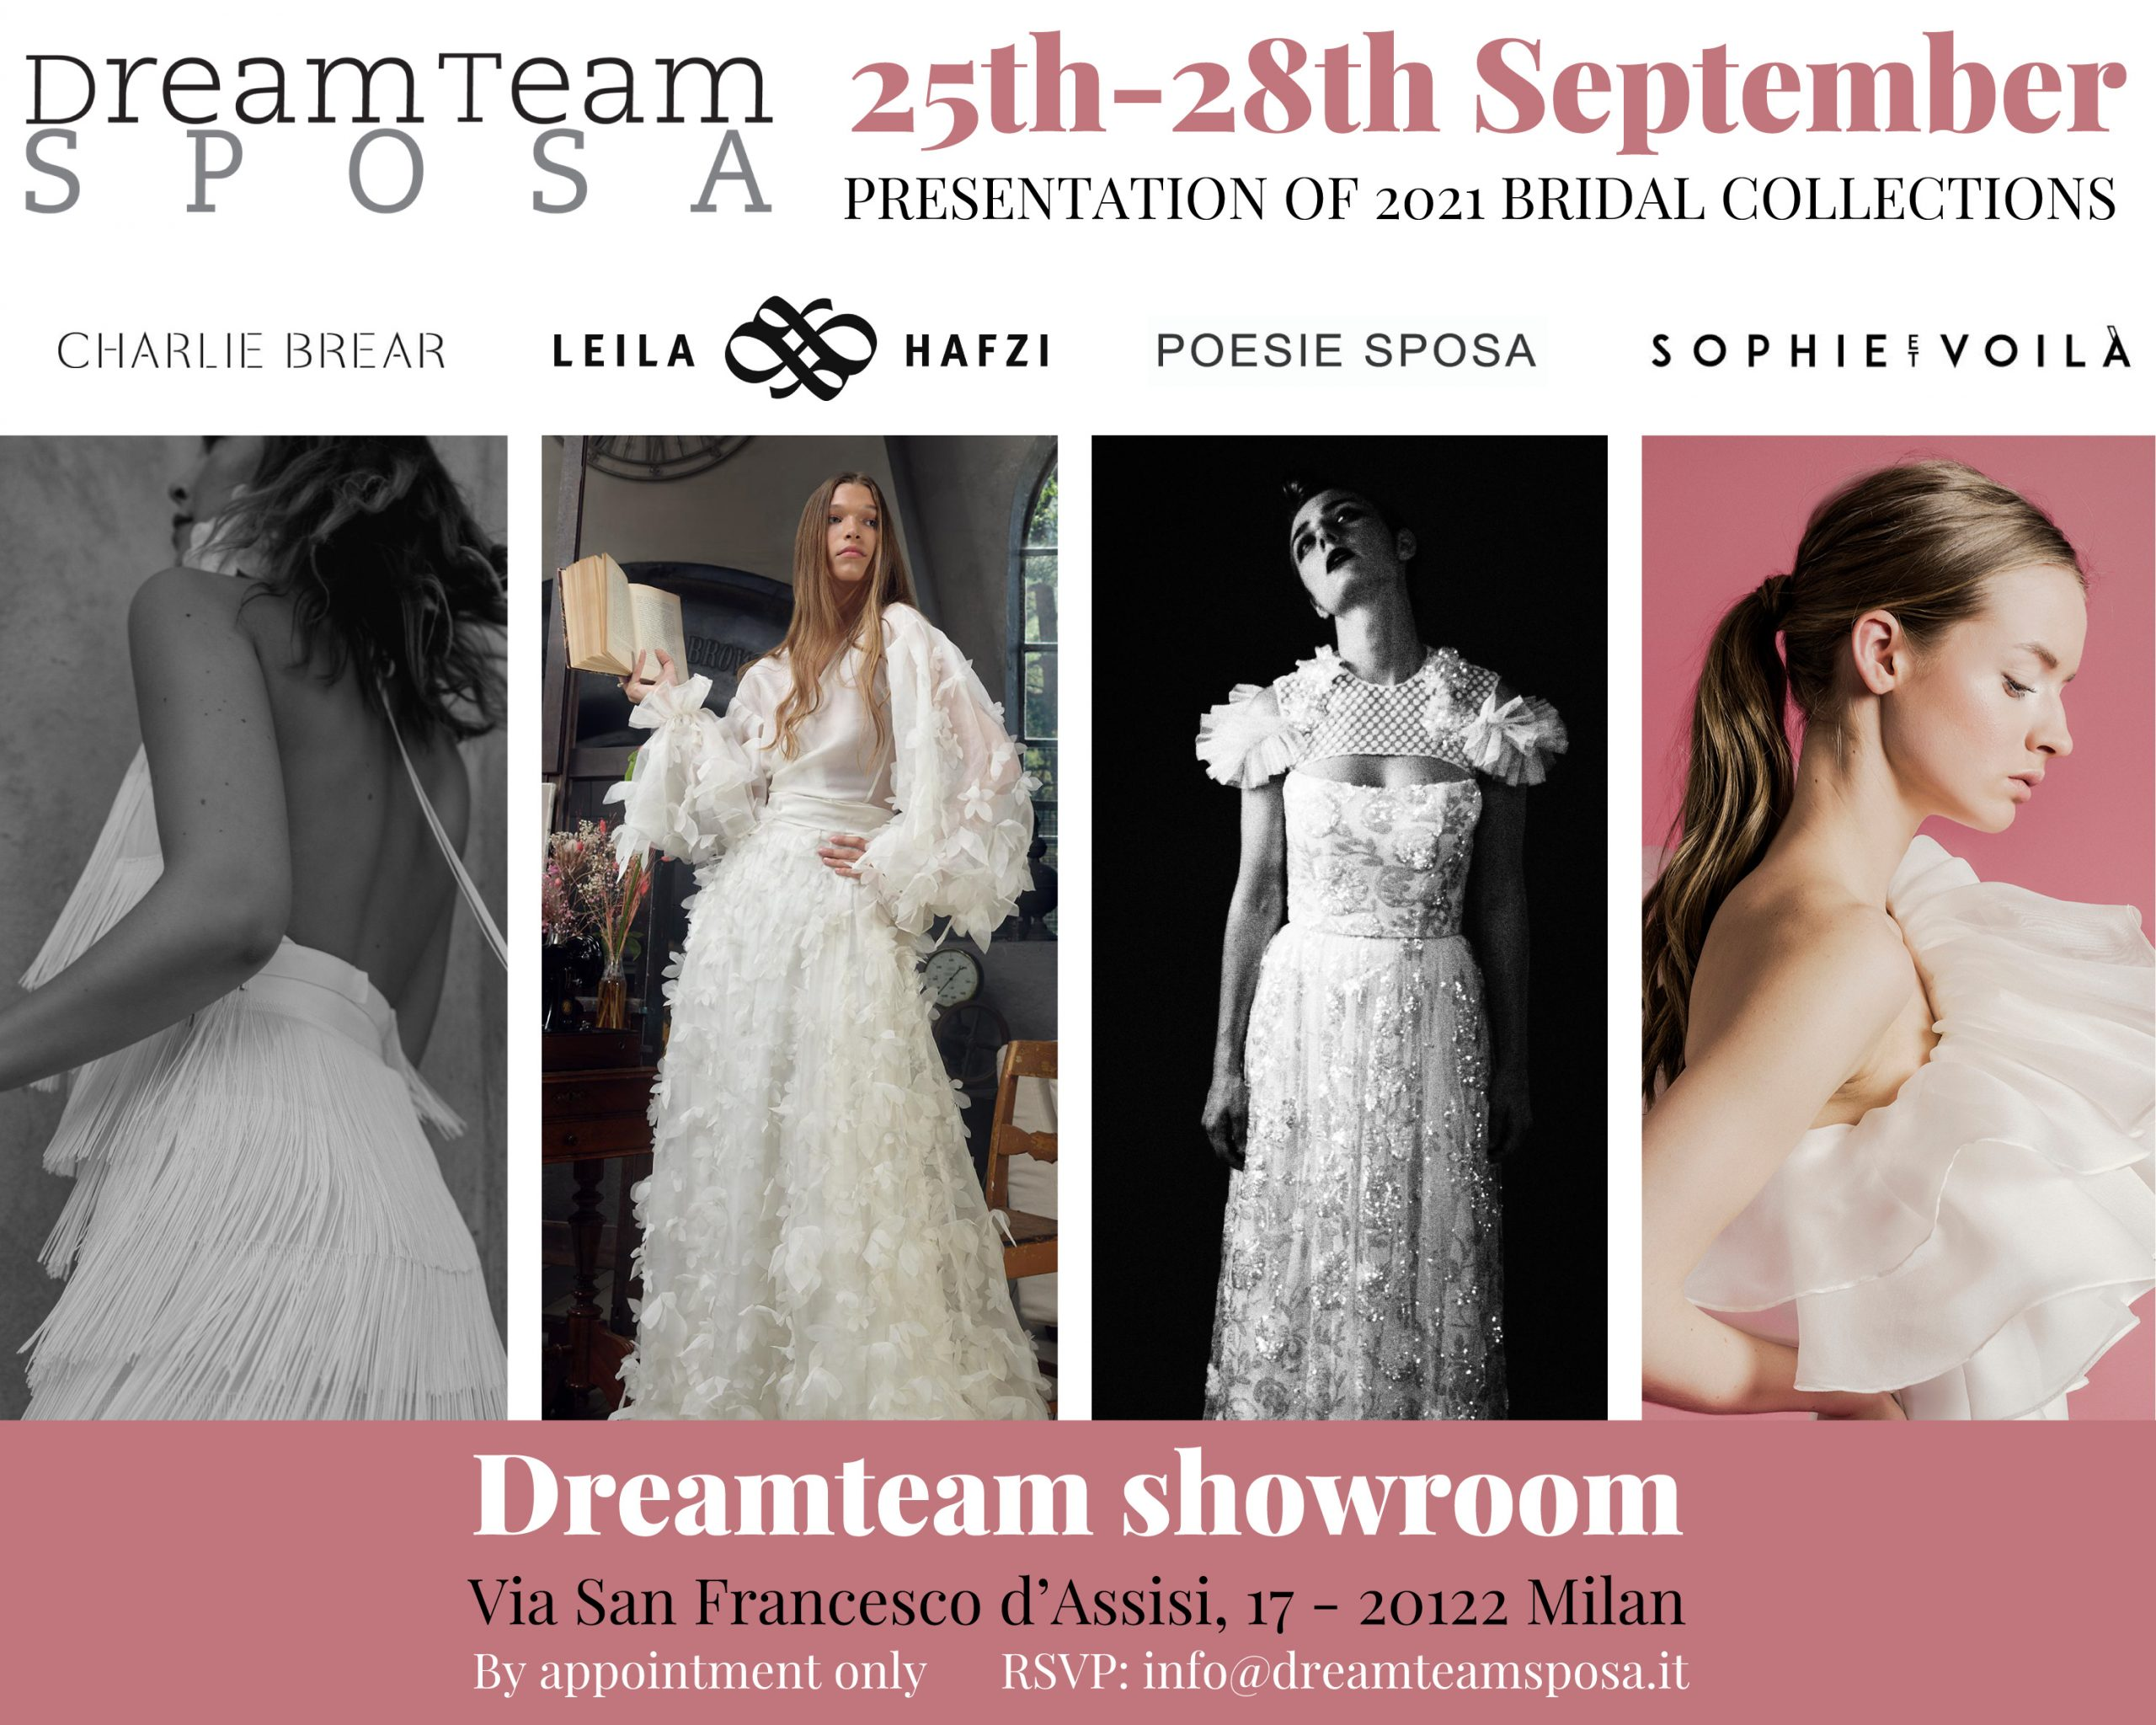 The wedding system re-starts: Dreamteam presents the 2021 collection in Milan 25-28th September